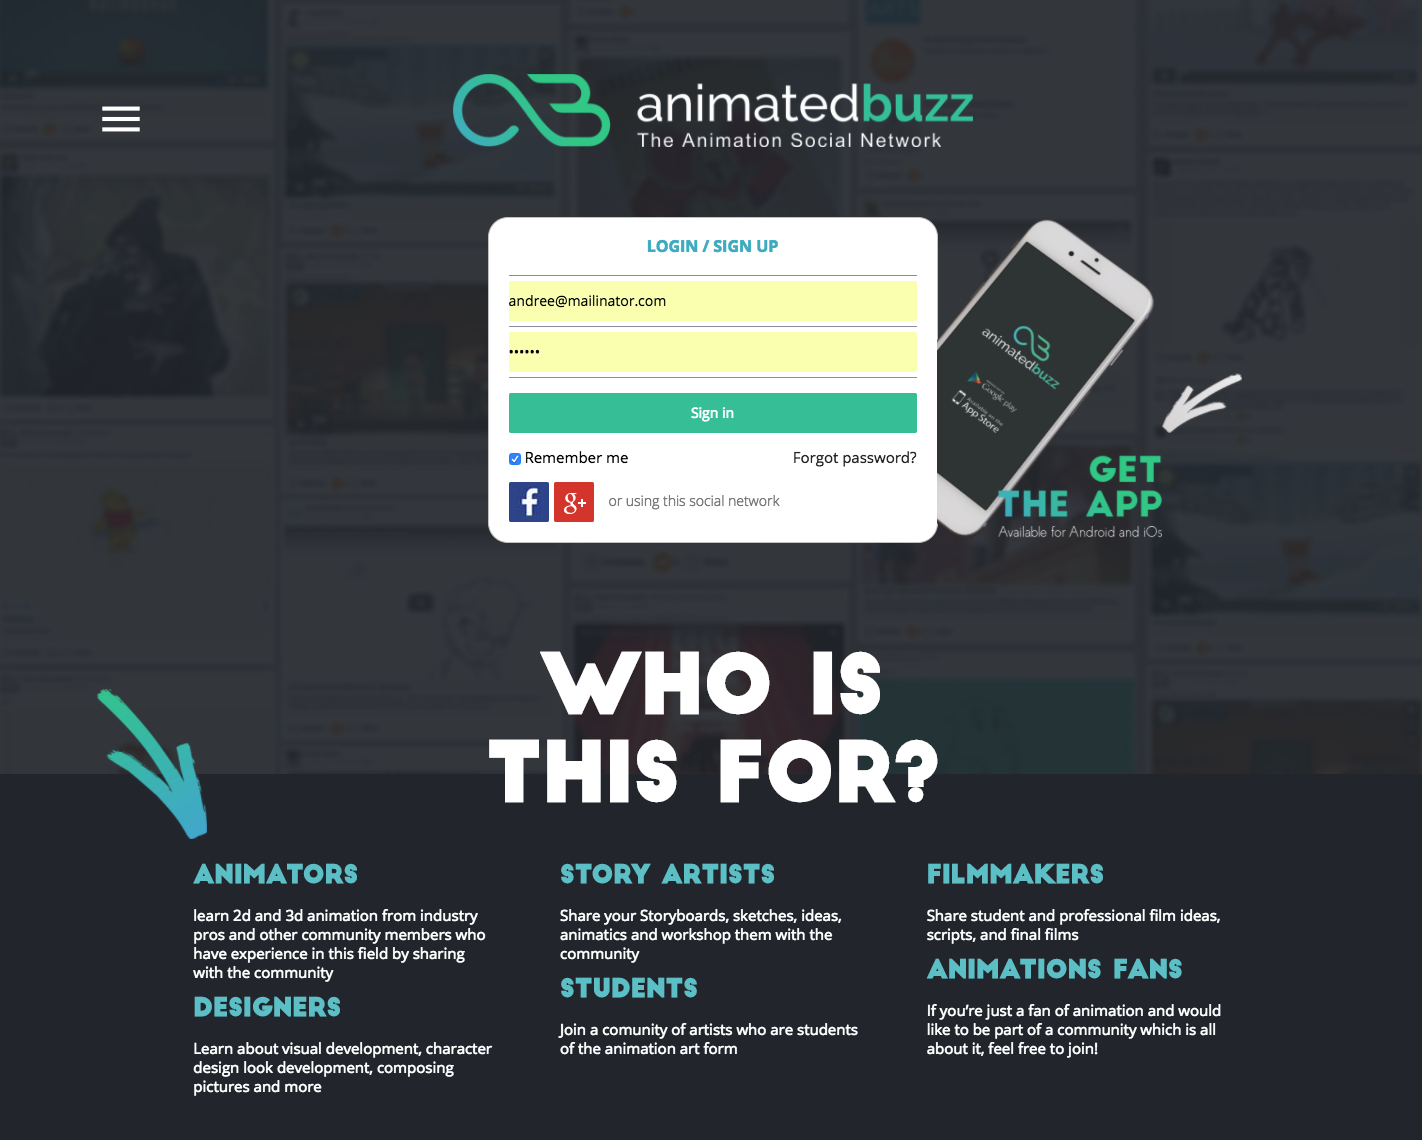 The Animation Social Network